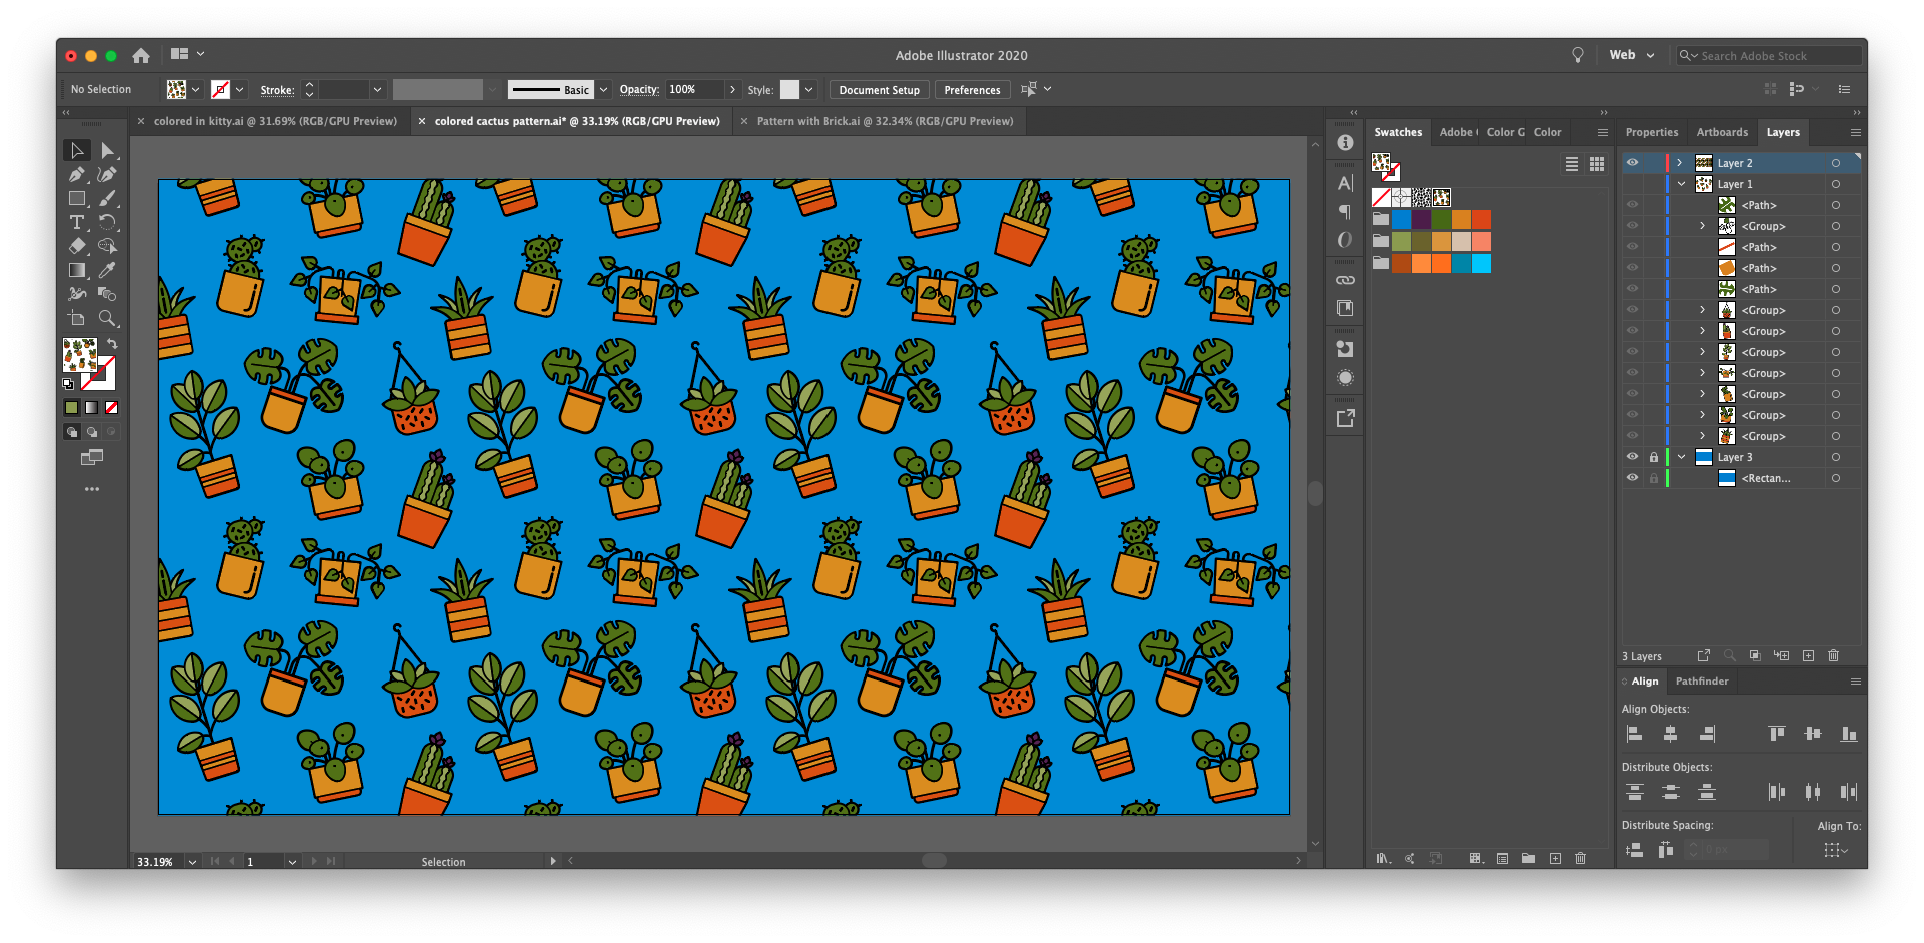 How to make a repeating pattern in Illustrator with more colorful icons: Use Live Paint to color in the shapes you'll use to make your pattern. Just know that you cannot use live paint within the pattern editor view.